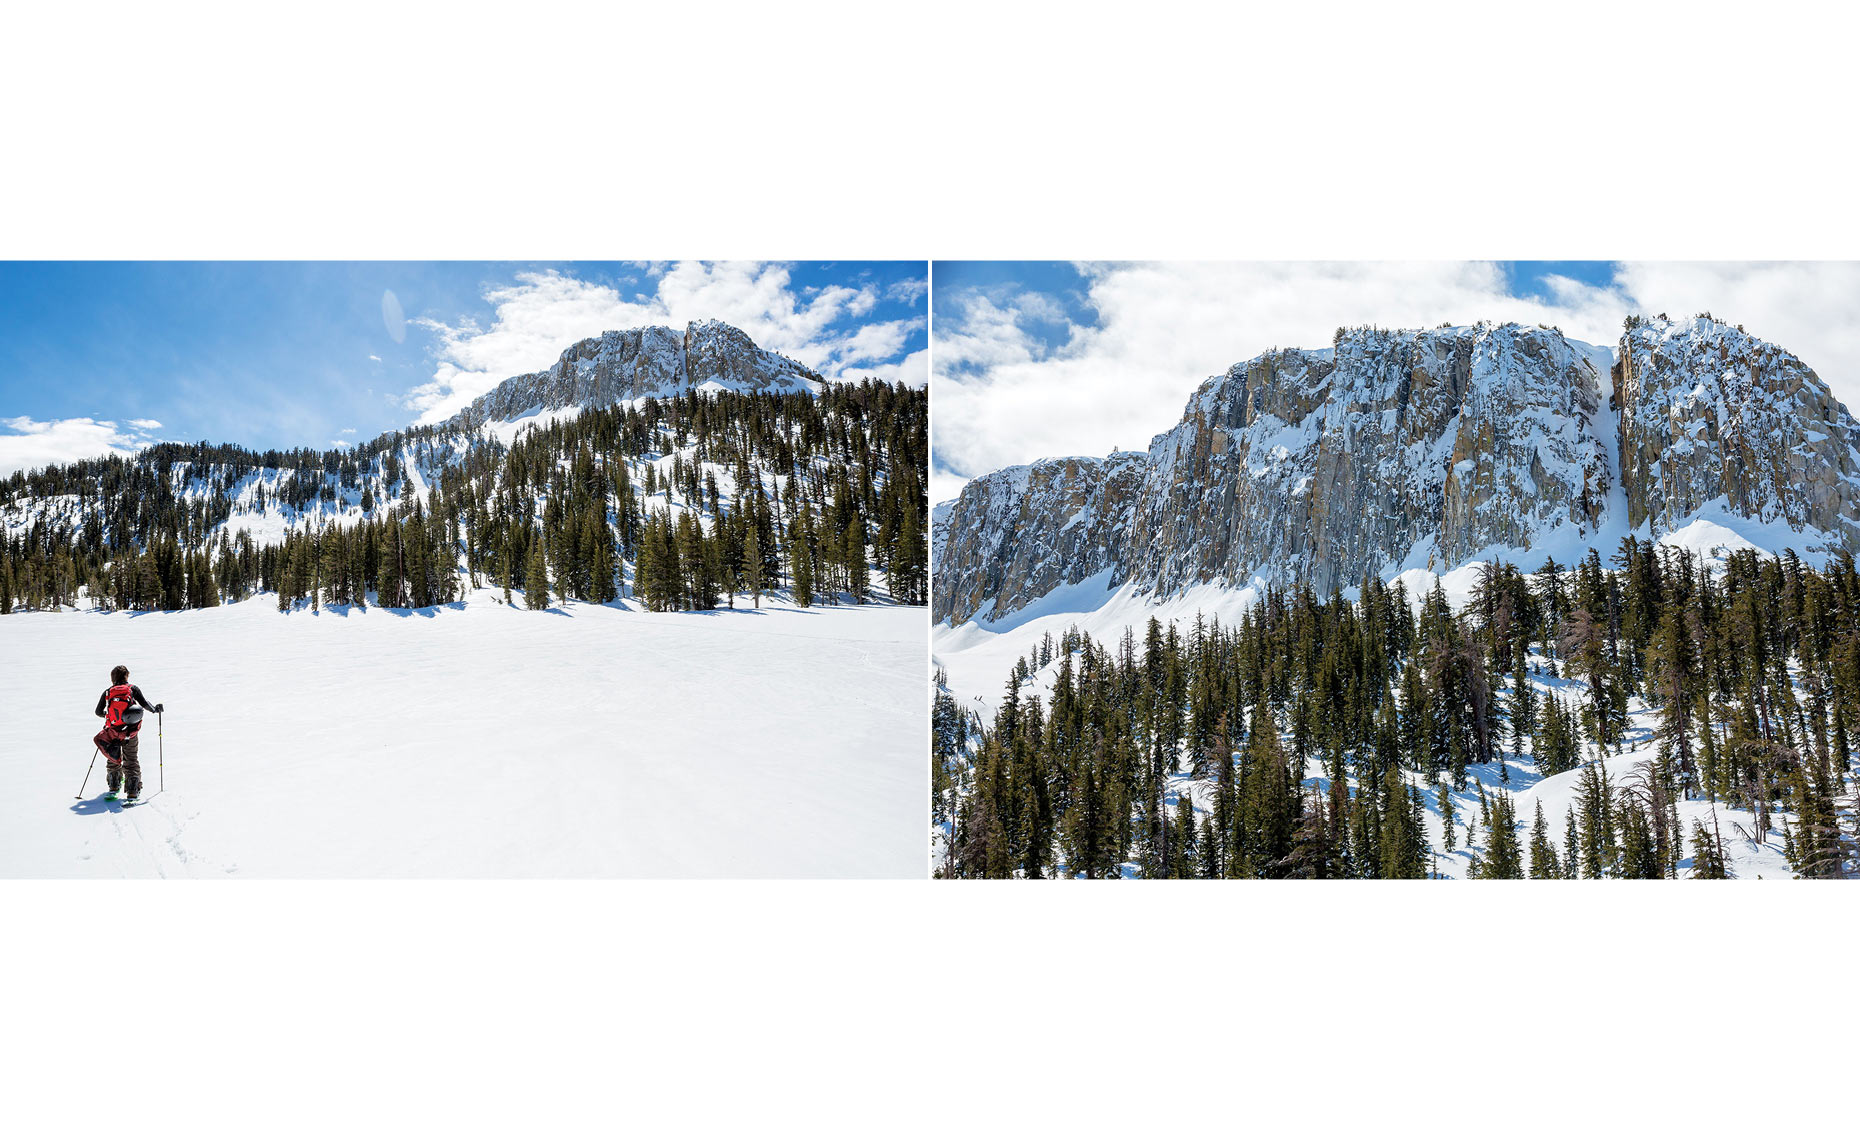 Phantom-Lifts-June-To-Mammoth-TWSNOW-Chris-Wellhausen-21